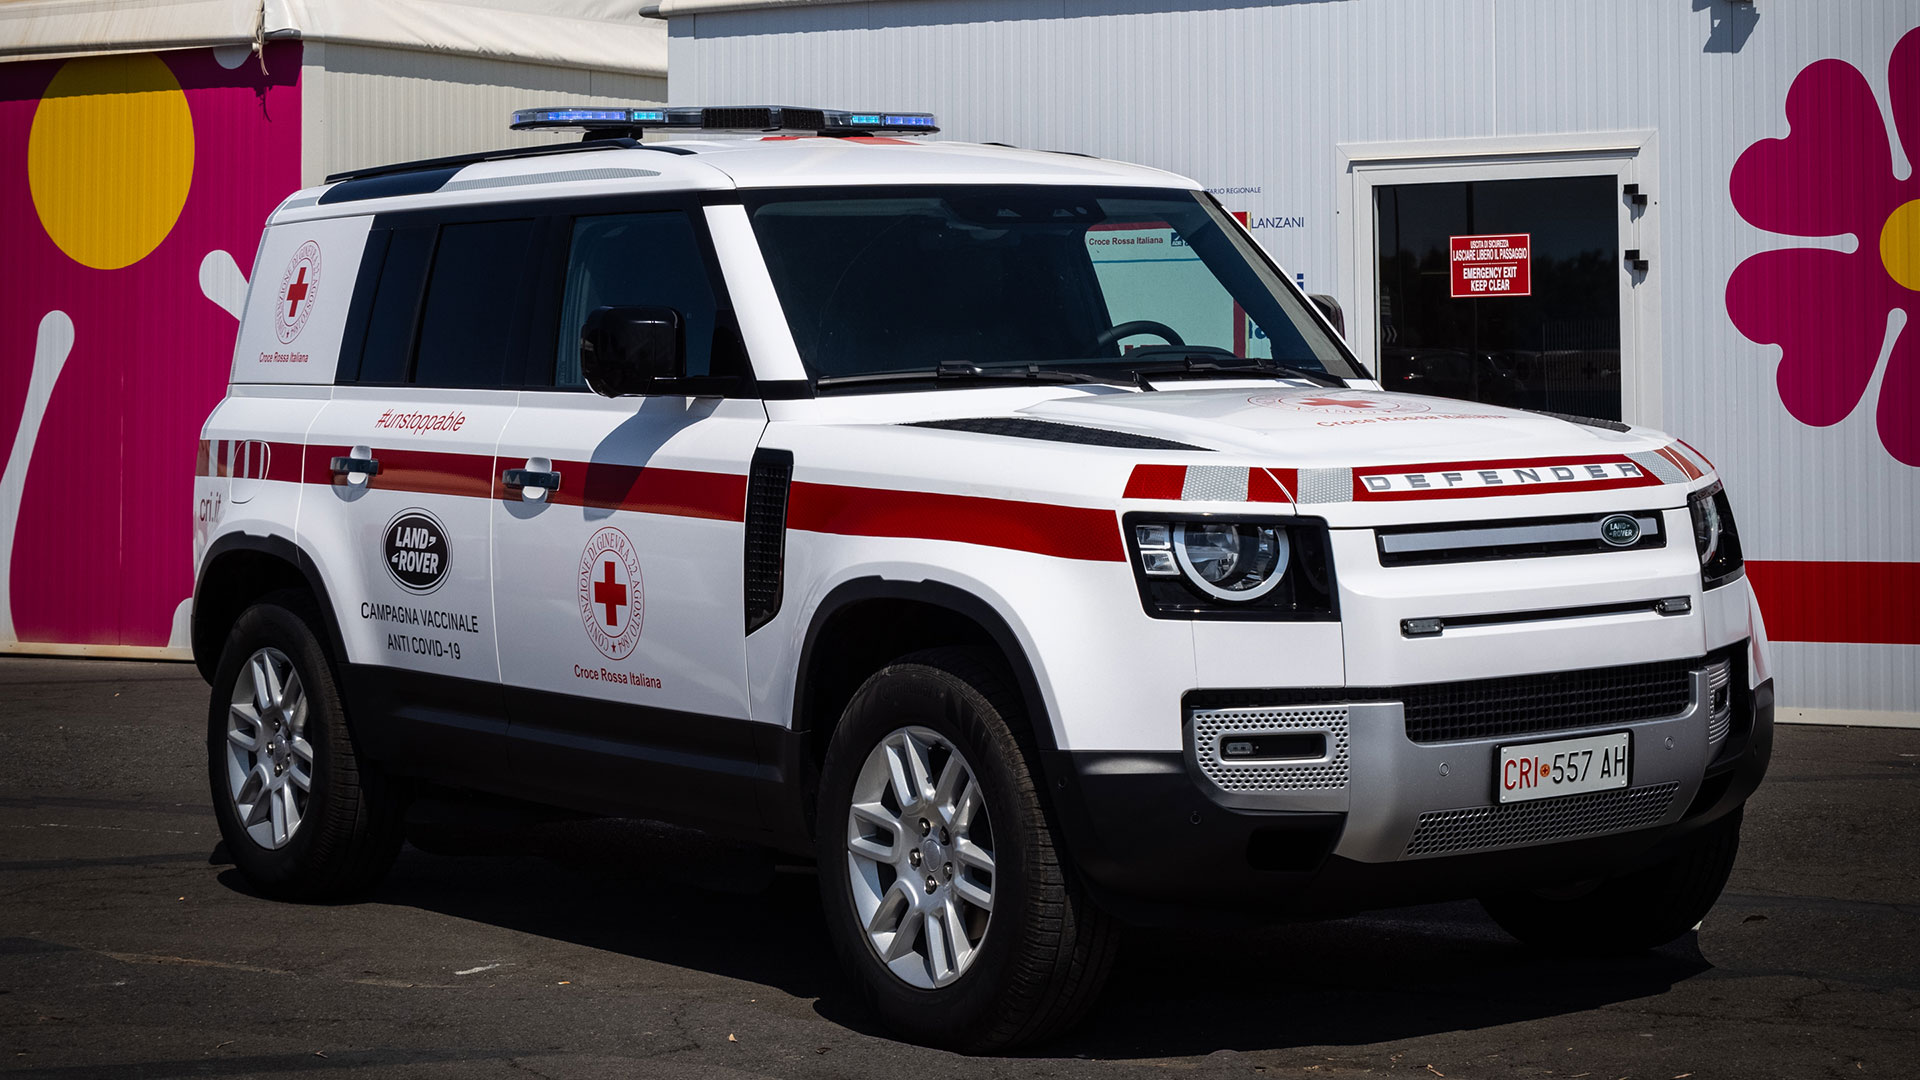 Croce Rossa Italiana - Land Rover Defender forWorks   Land Rover IT